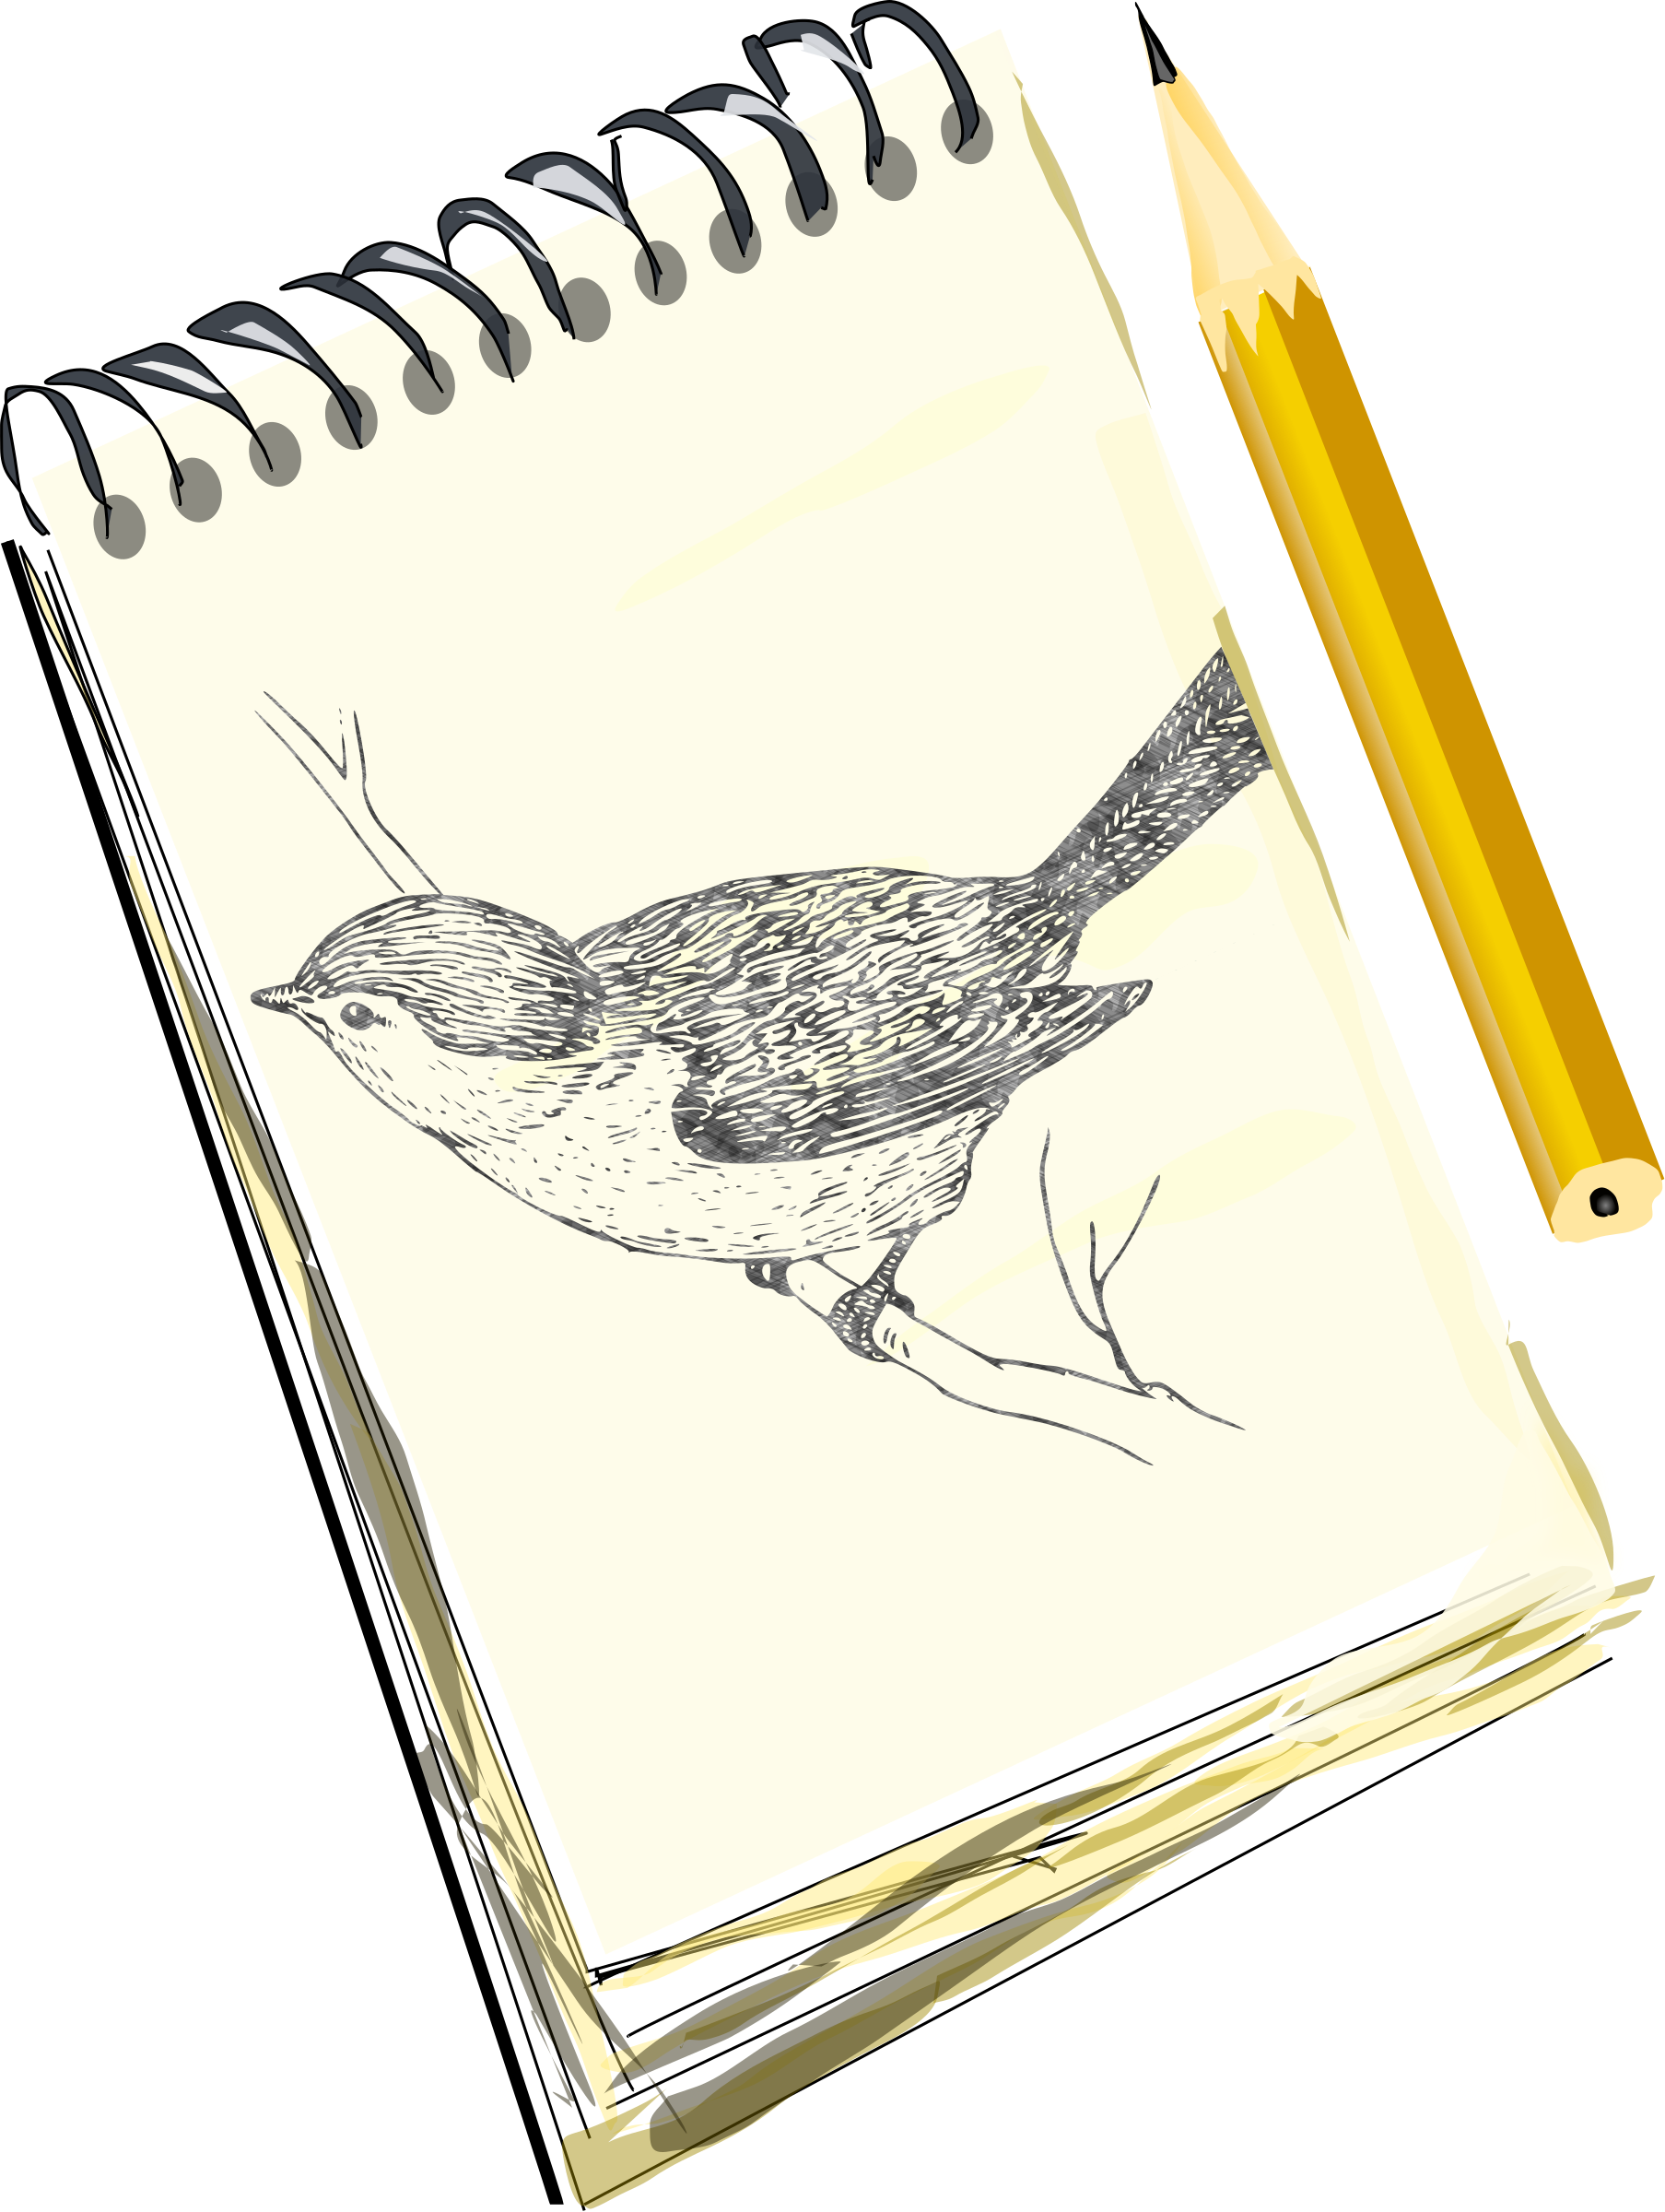 Sketchpad, with drawing of a bird by eady